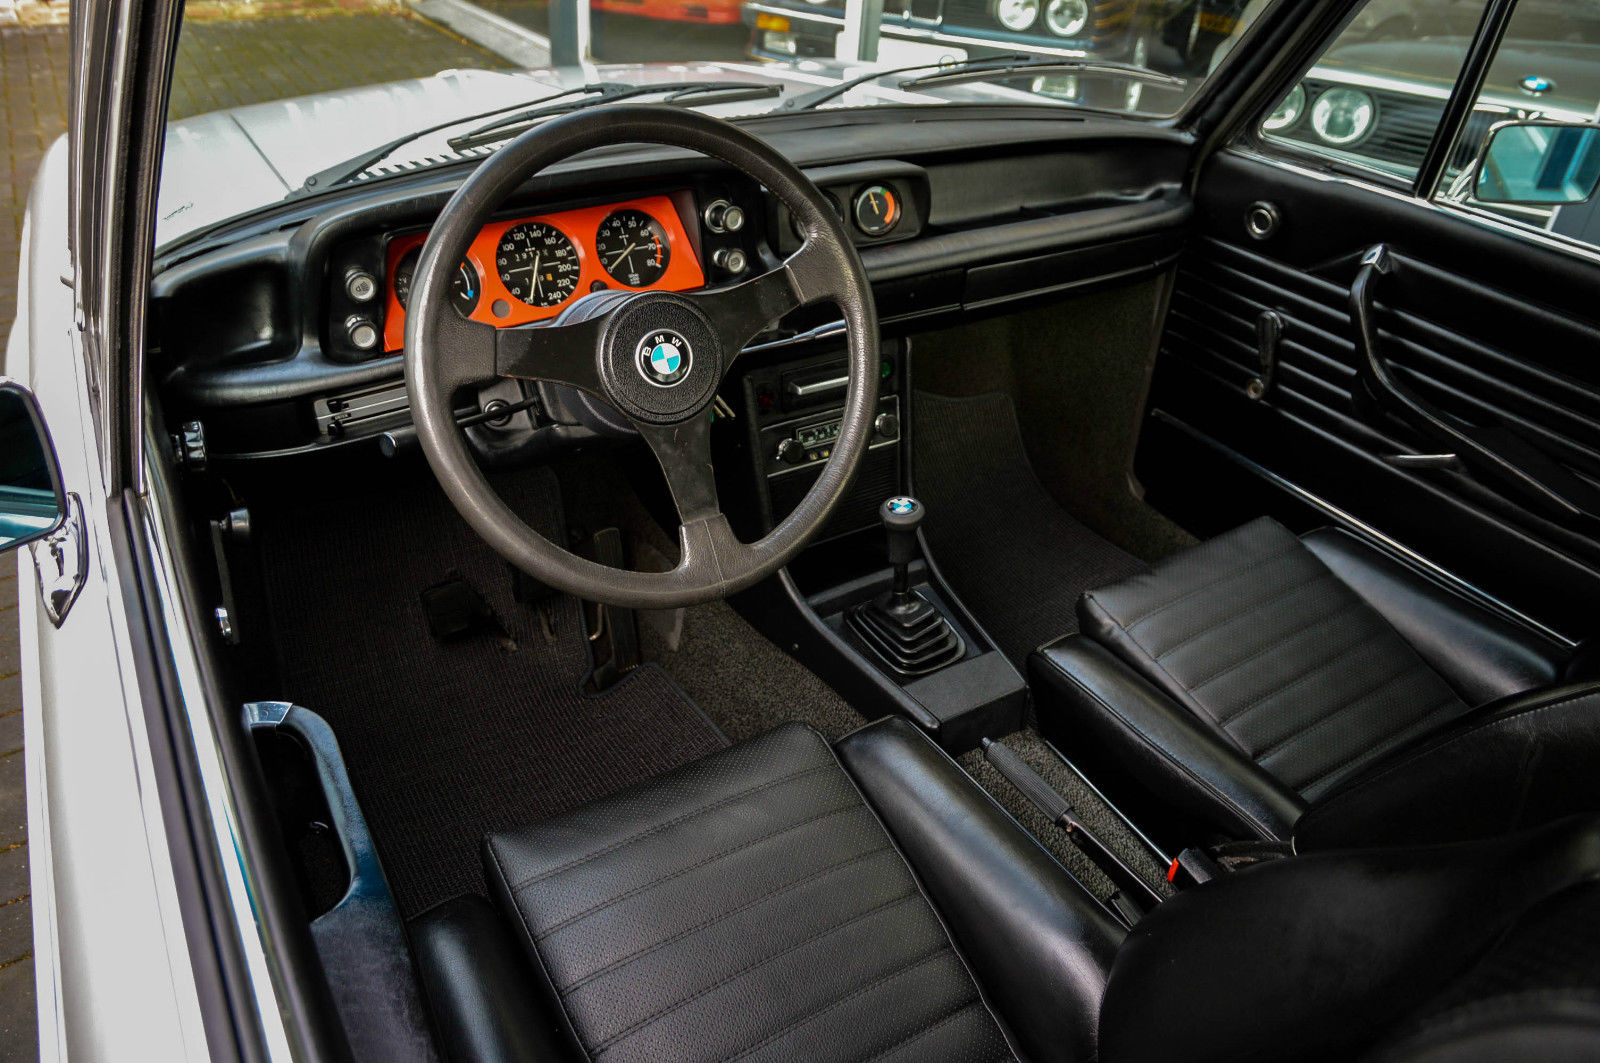 1974 BMW 2002 Turbo | German Cars For Sale Blog